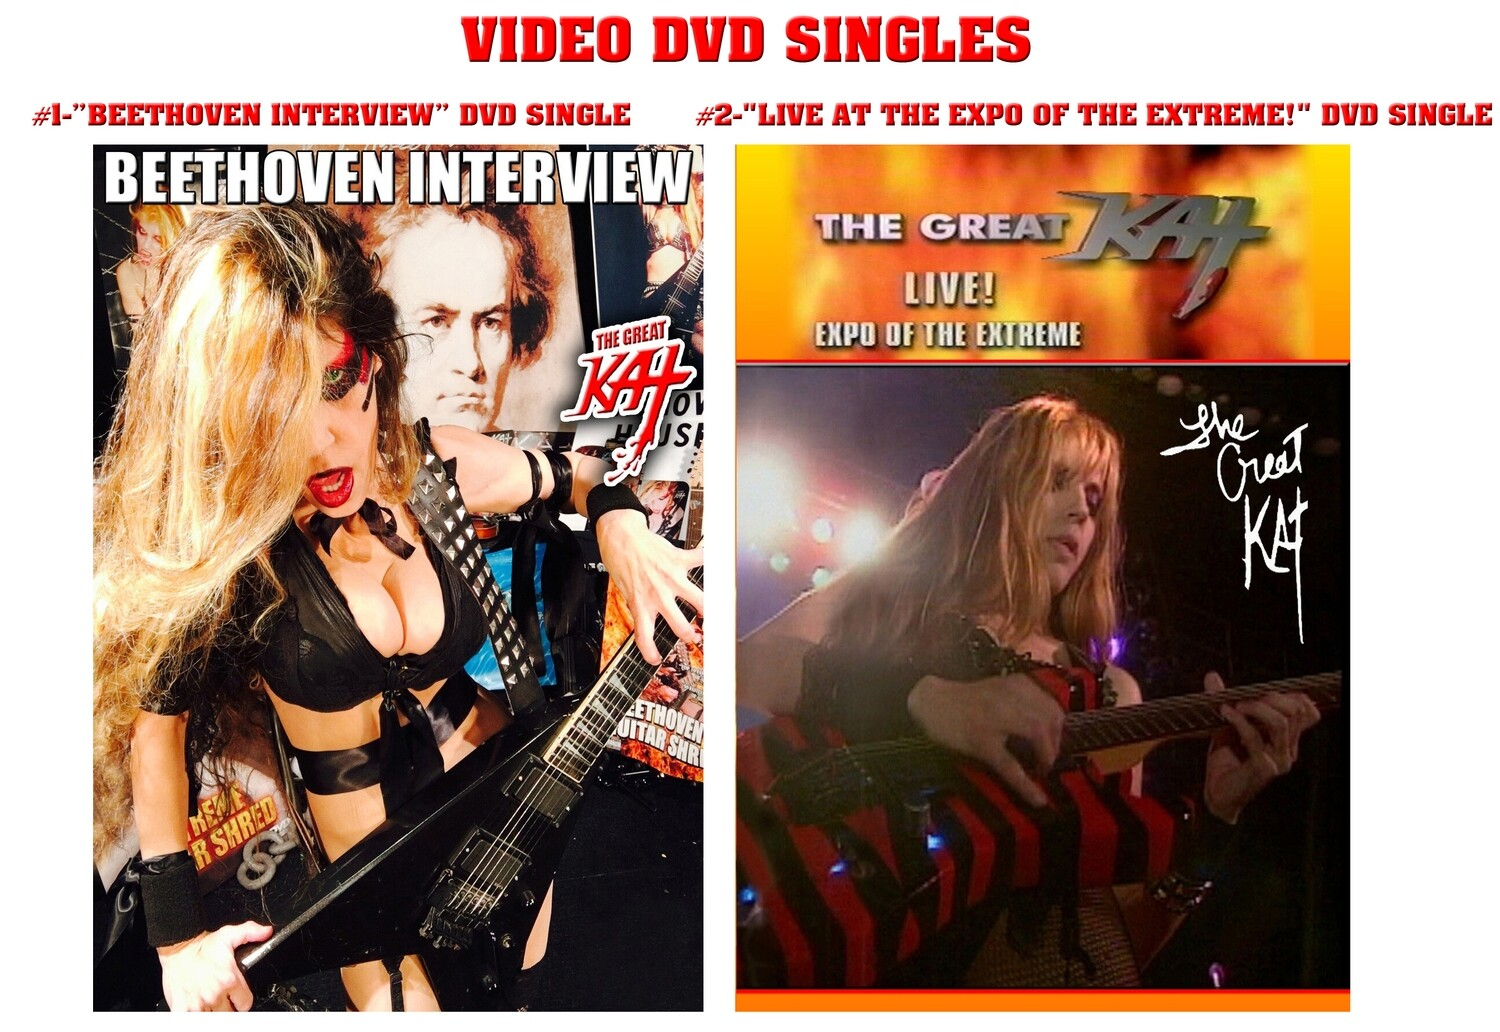 """GREAT KAT DVD SINGLES! """"BEETHOVEN INTERVIEW"""" DVD SINGLE (1 min) or """"LIVE AT THE EXPO OF THE EXTREME!"""" DVD SINGLE (5 Min)! PERSONALIZED AUTOGRAPHED by THE GREAT KAT! (Signed to Customer's Name)"""